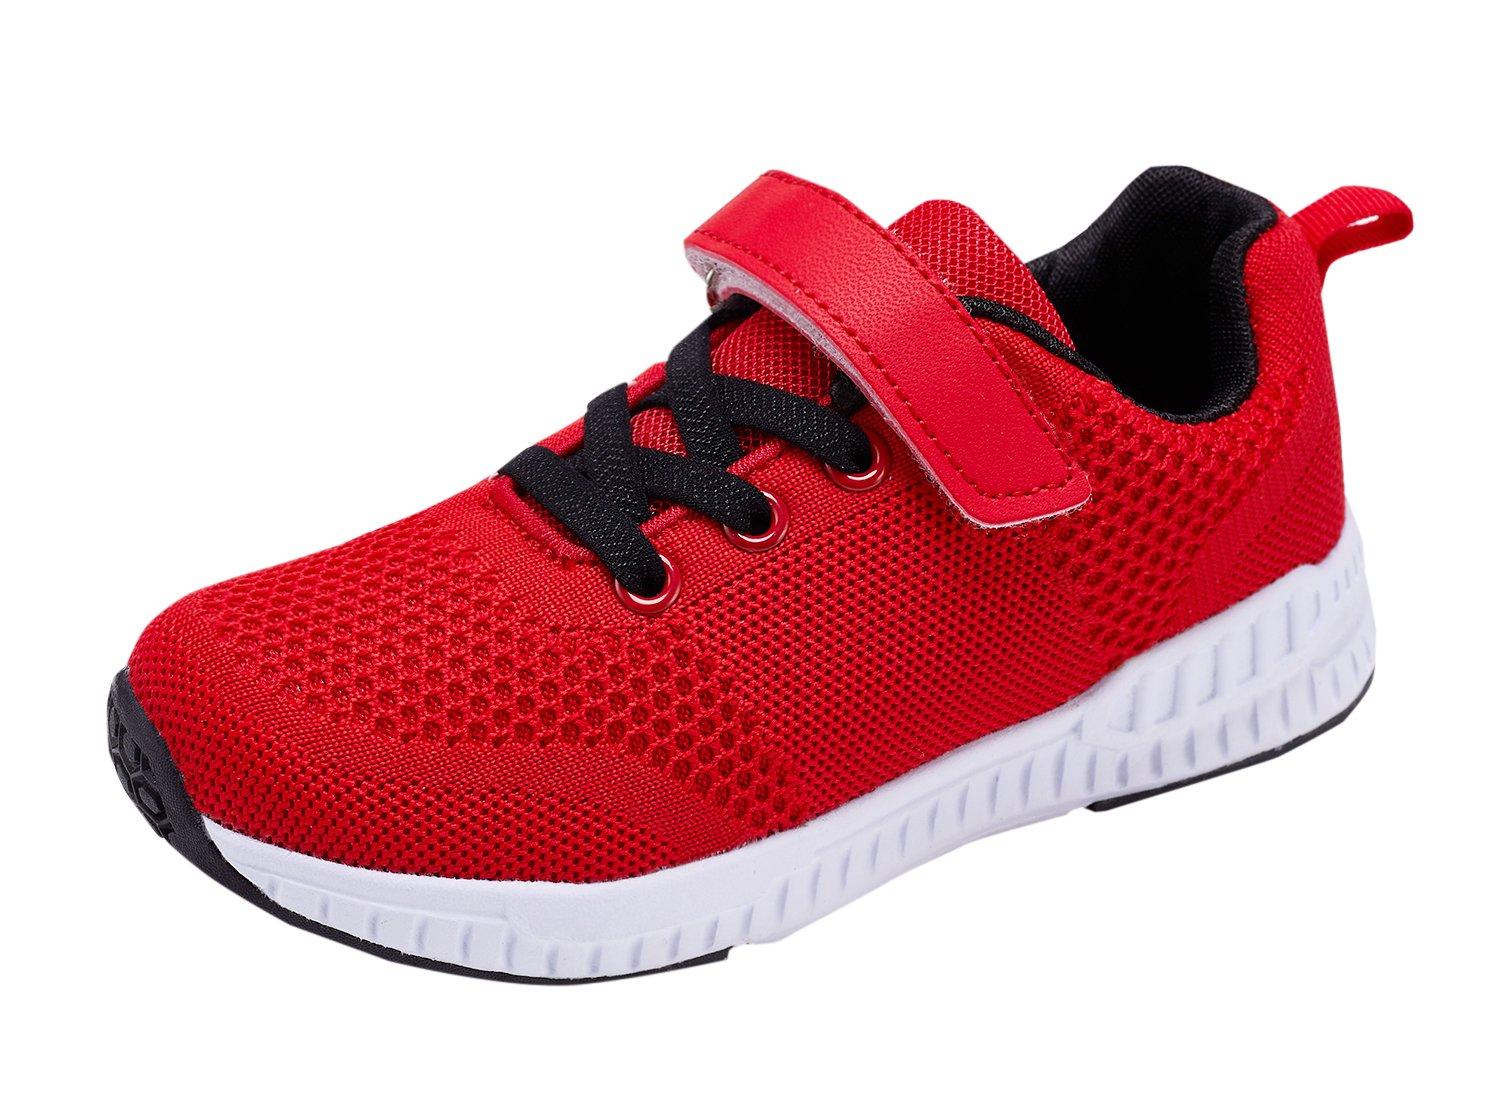 Casbeam Toddler Kids Velcro Sneakers Boys and Girls Walking Running Shoes Red 28